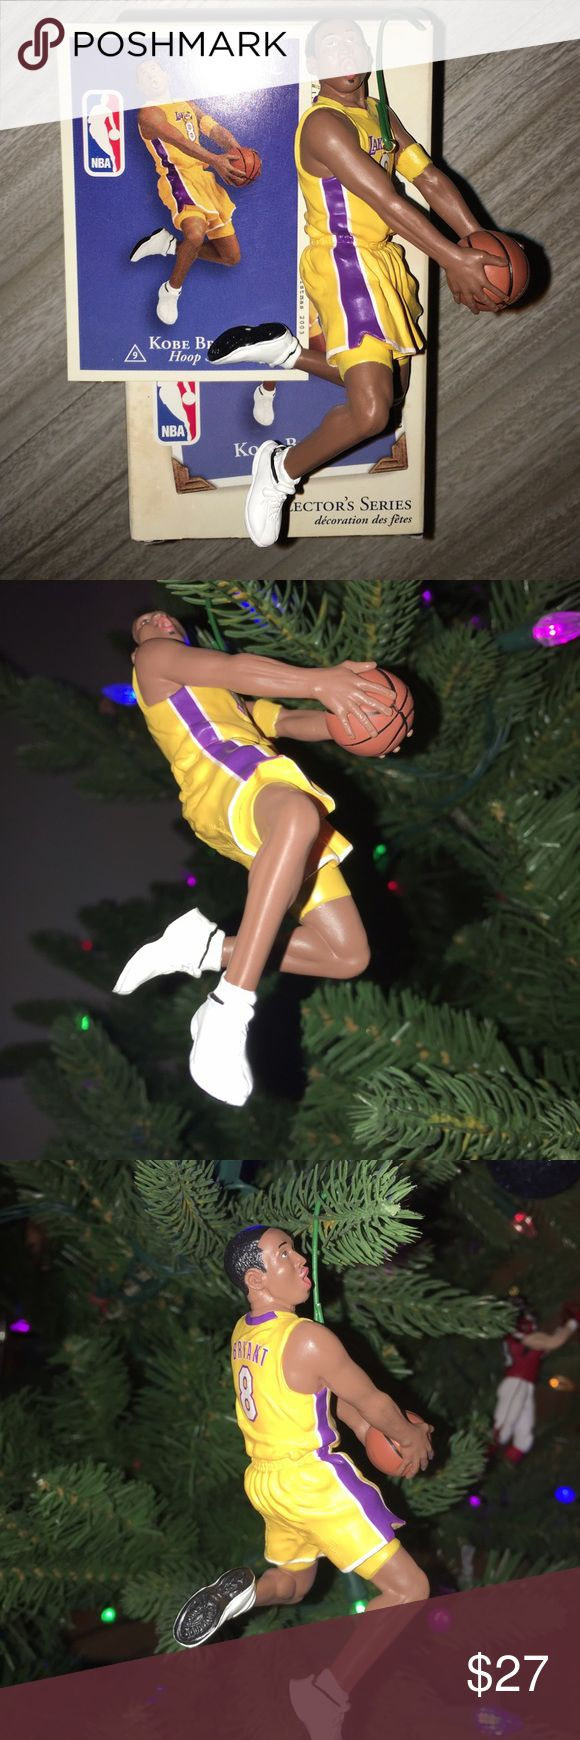 Hallmark LA Lakers Kobe Bryant ornament LA Lakers Kobe Bryant hallmark keepsake Christmas ornament. In the box with the original trading card. Released in 2003. If you have any questions or would like additional photos please feel free to ask. hallmark Accessories